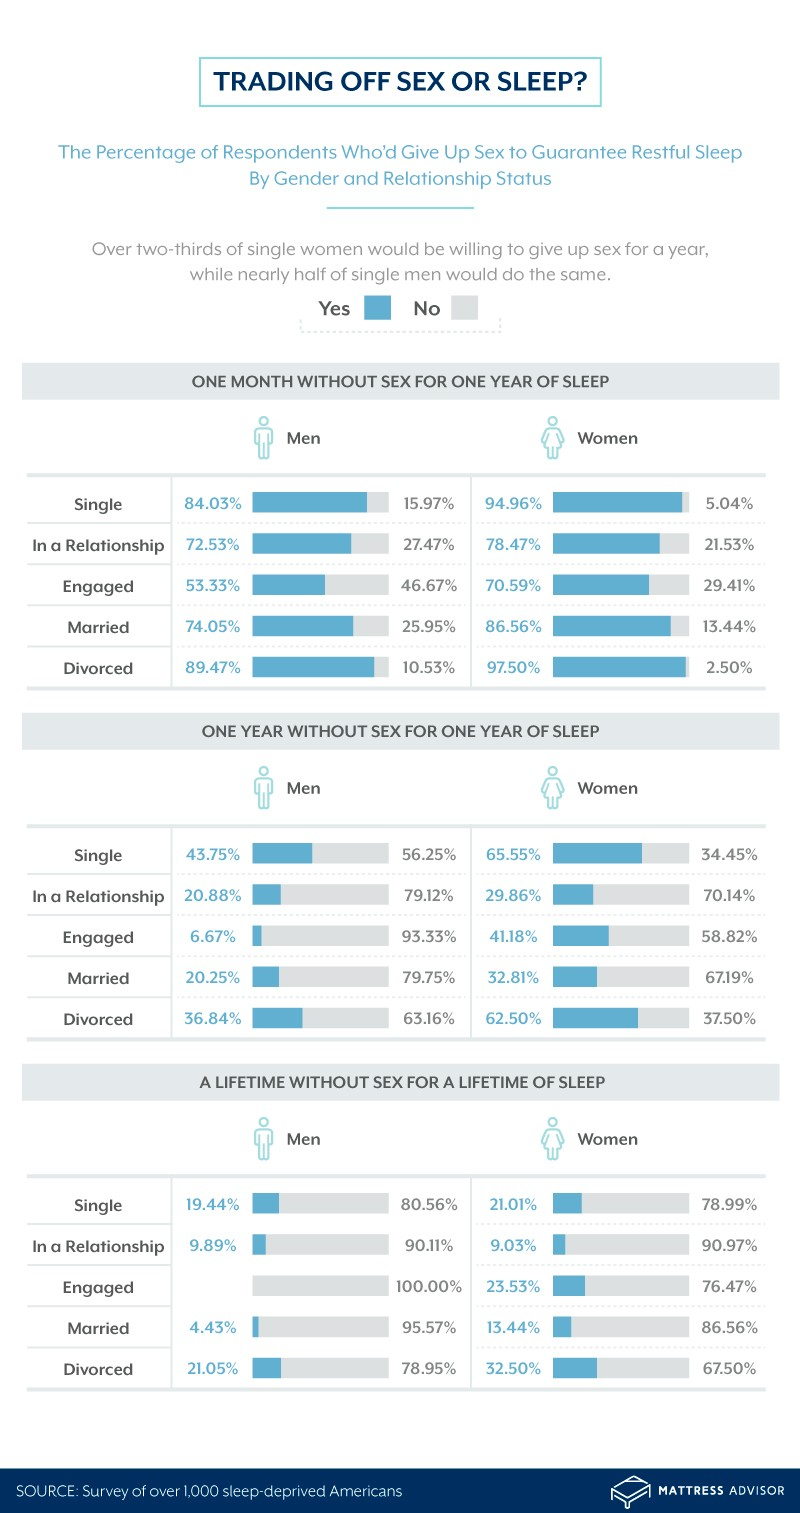 Graphic showing the percentage of respondents who would give up sex for better sleep